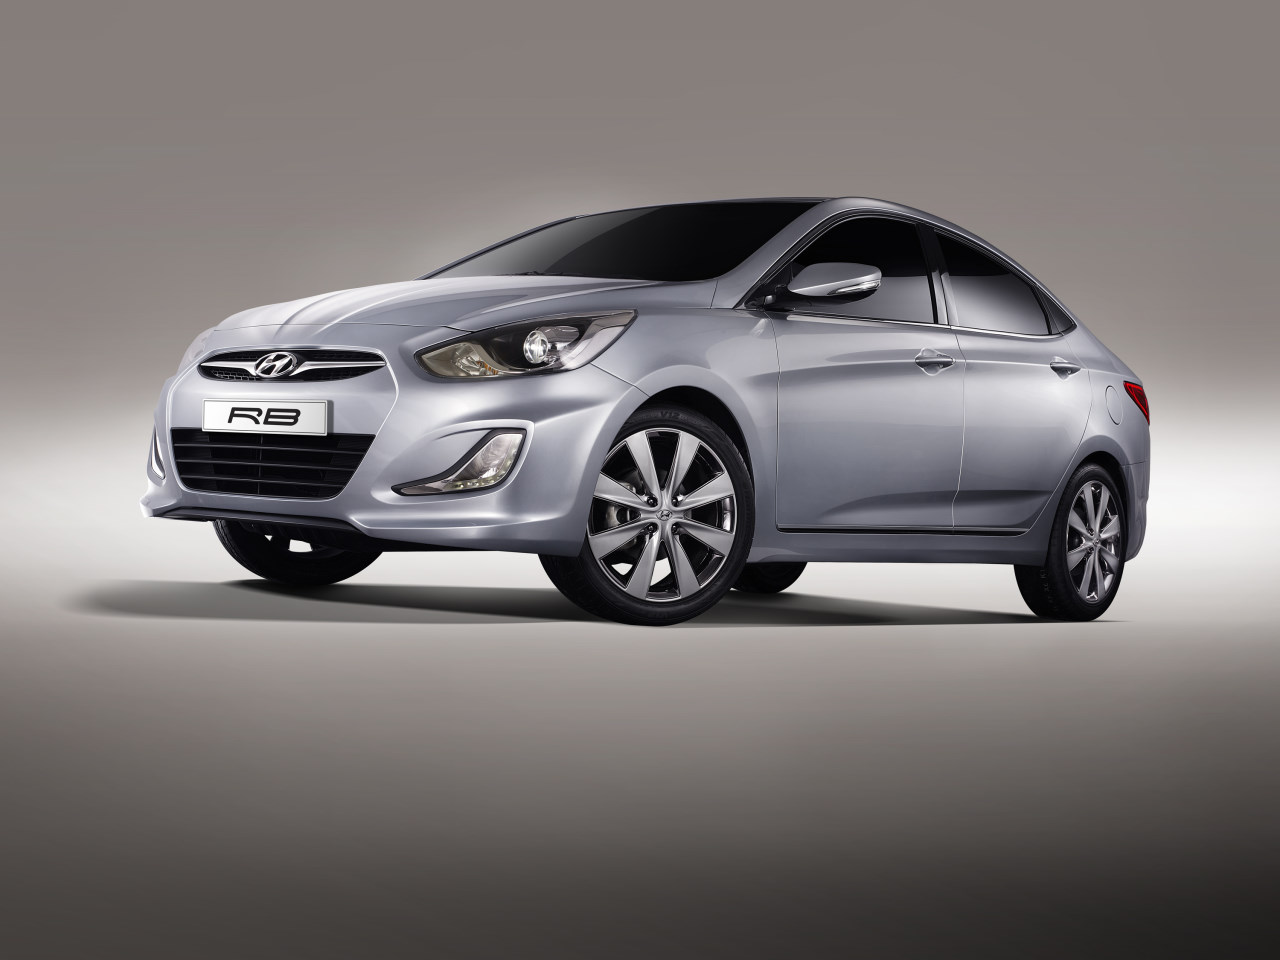 Hyundai RB Concept 5 lg Hyundai RB Concept   Photos, Features, Reviews, Price